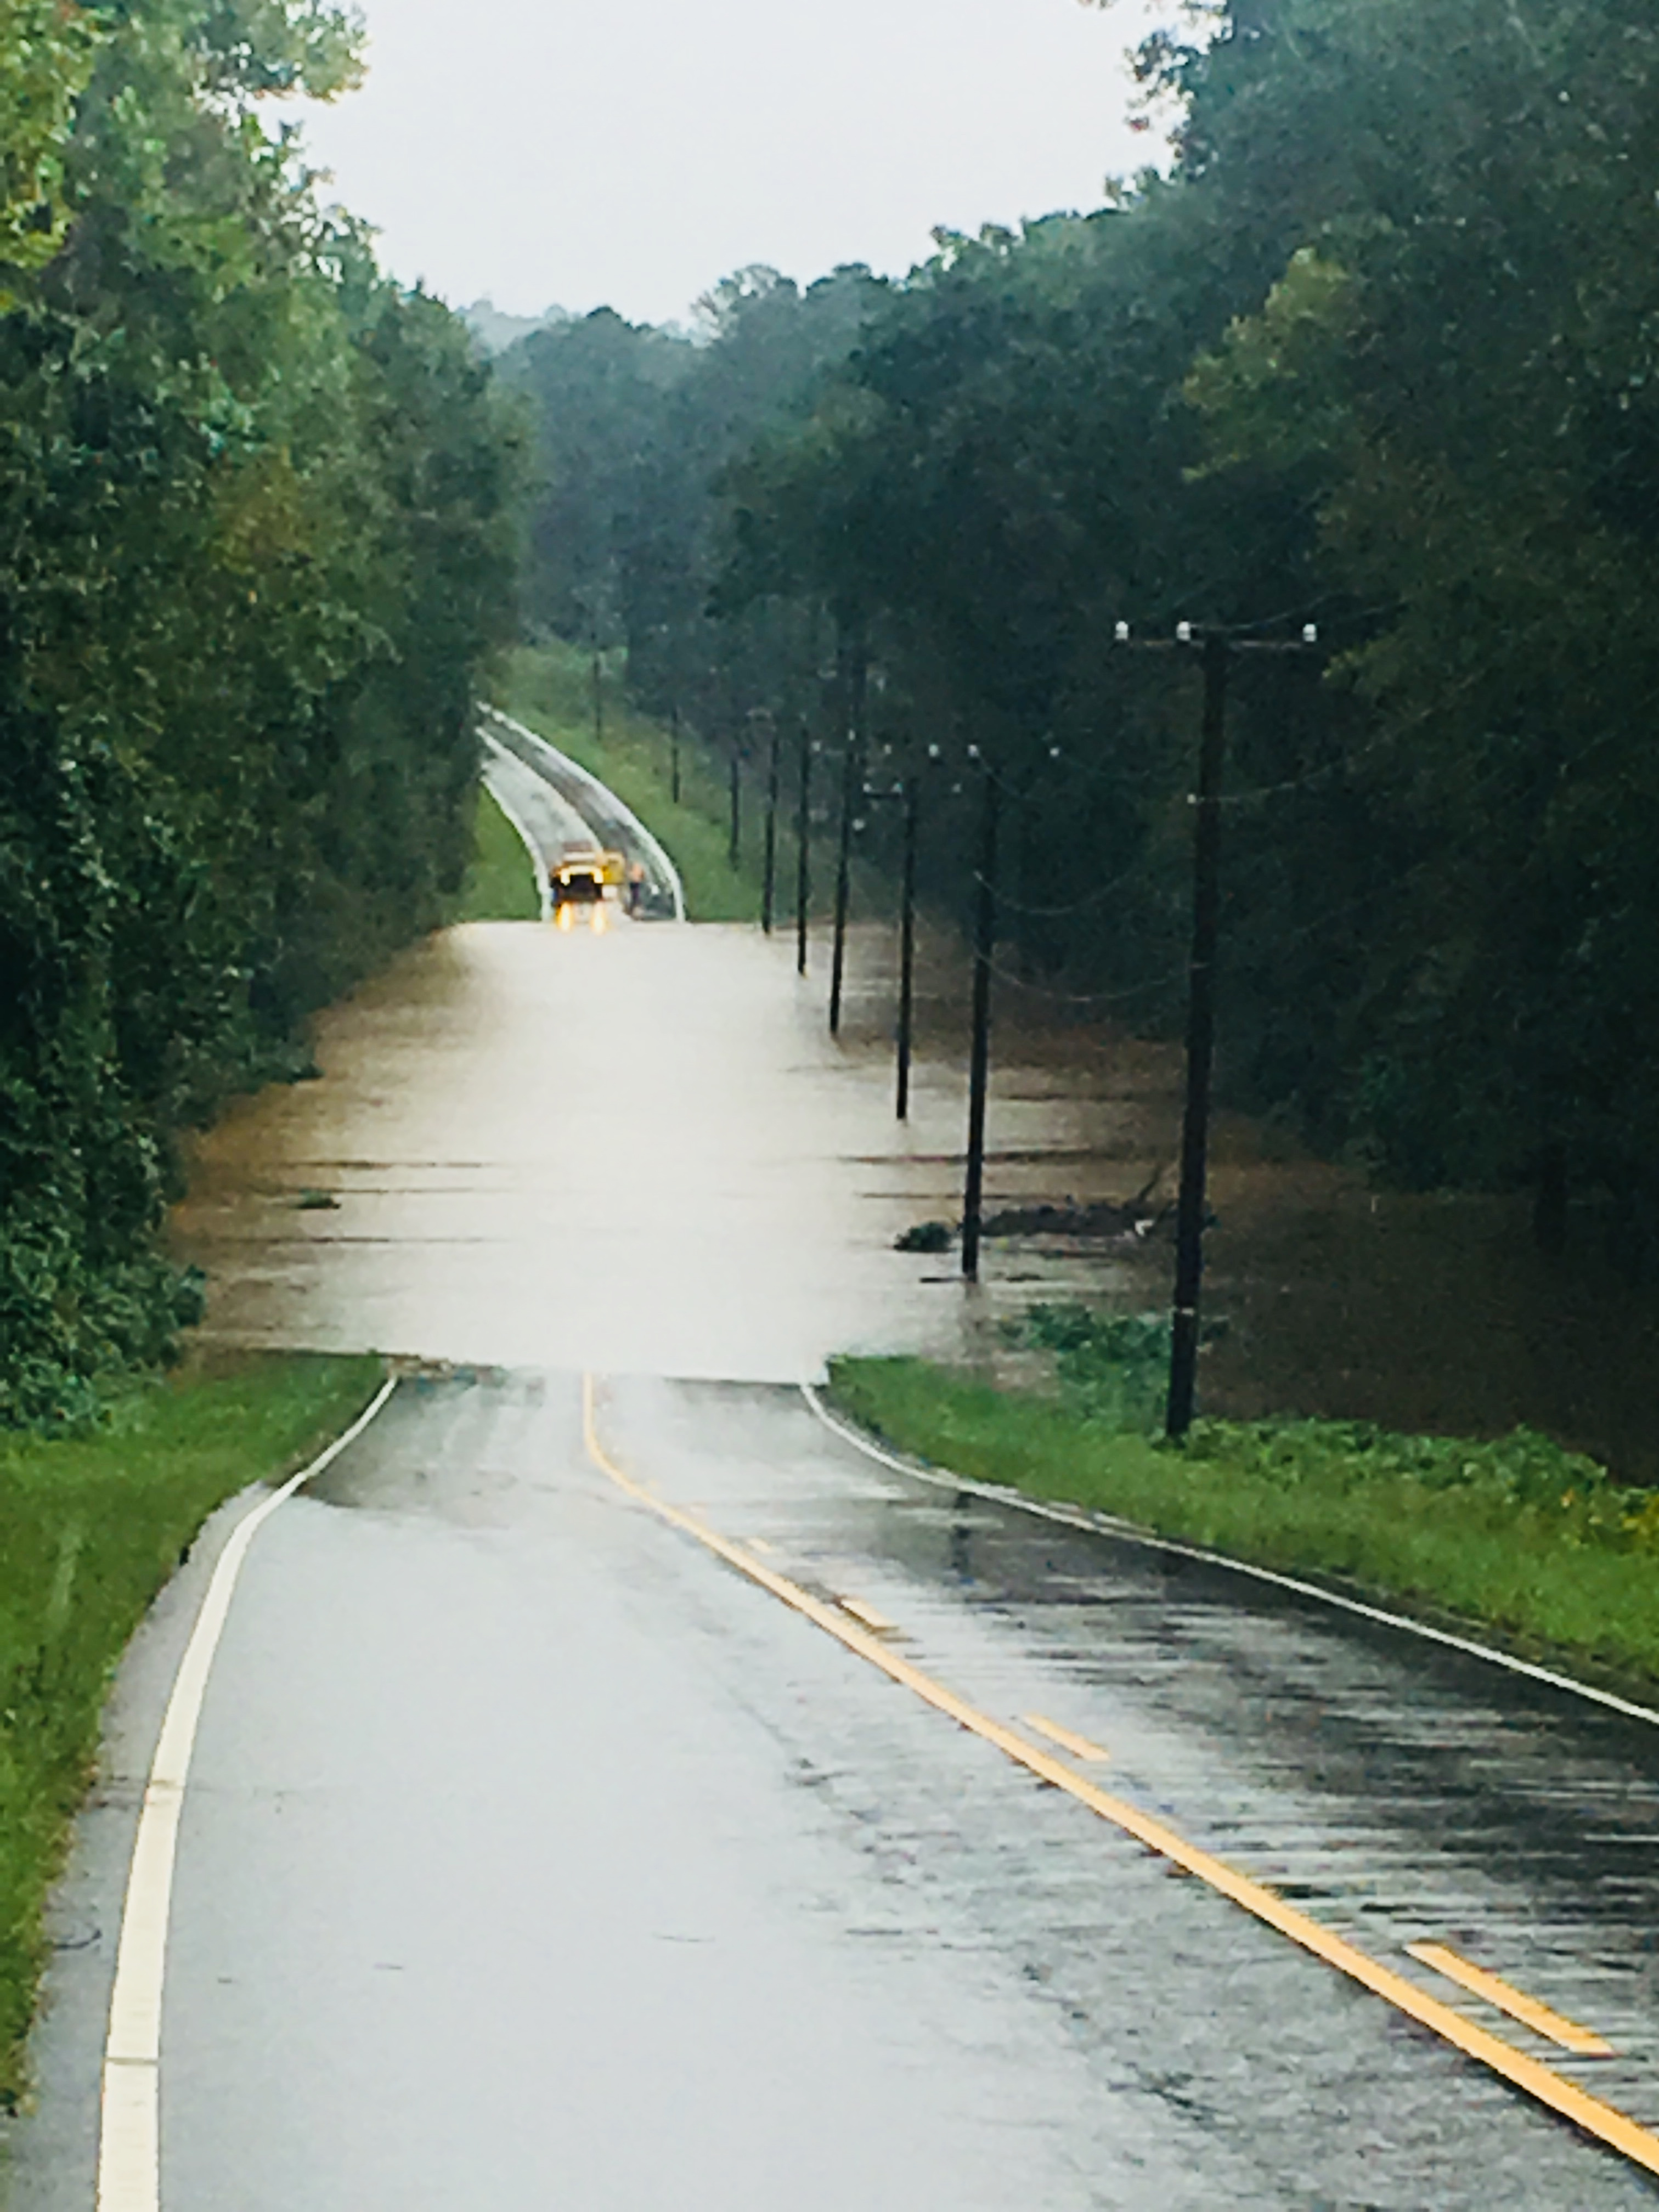 "<div class=""meta image-caption""><div class=""origin-logo origin-image wtvd""><span>WTVD</span></div><span class=""caption-text"">Central Avenue Ext. is flooded Monday morning in Butner. (ABC11 Eyewitness - Frank Clemmensen)</span></div>"